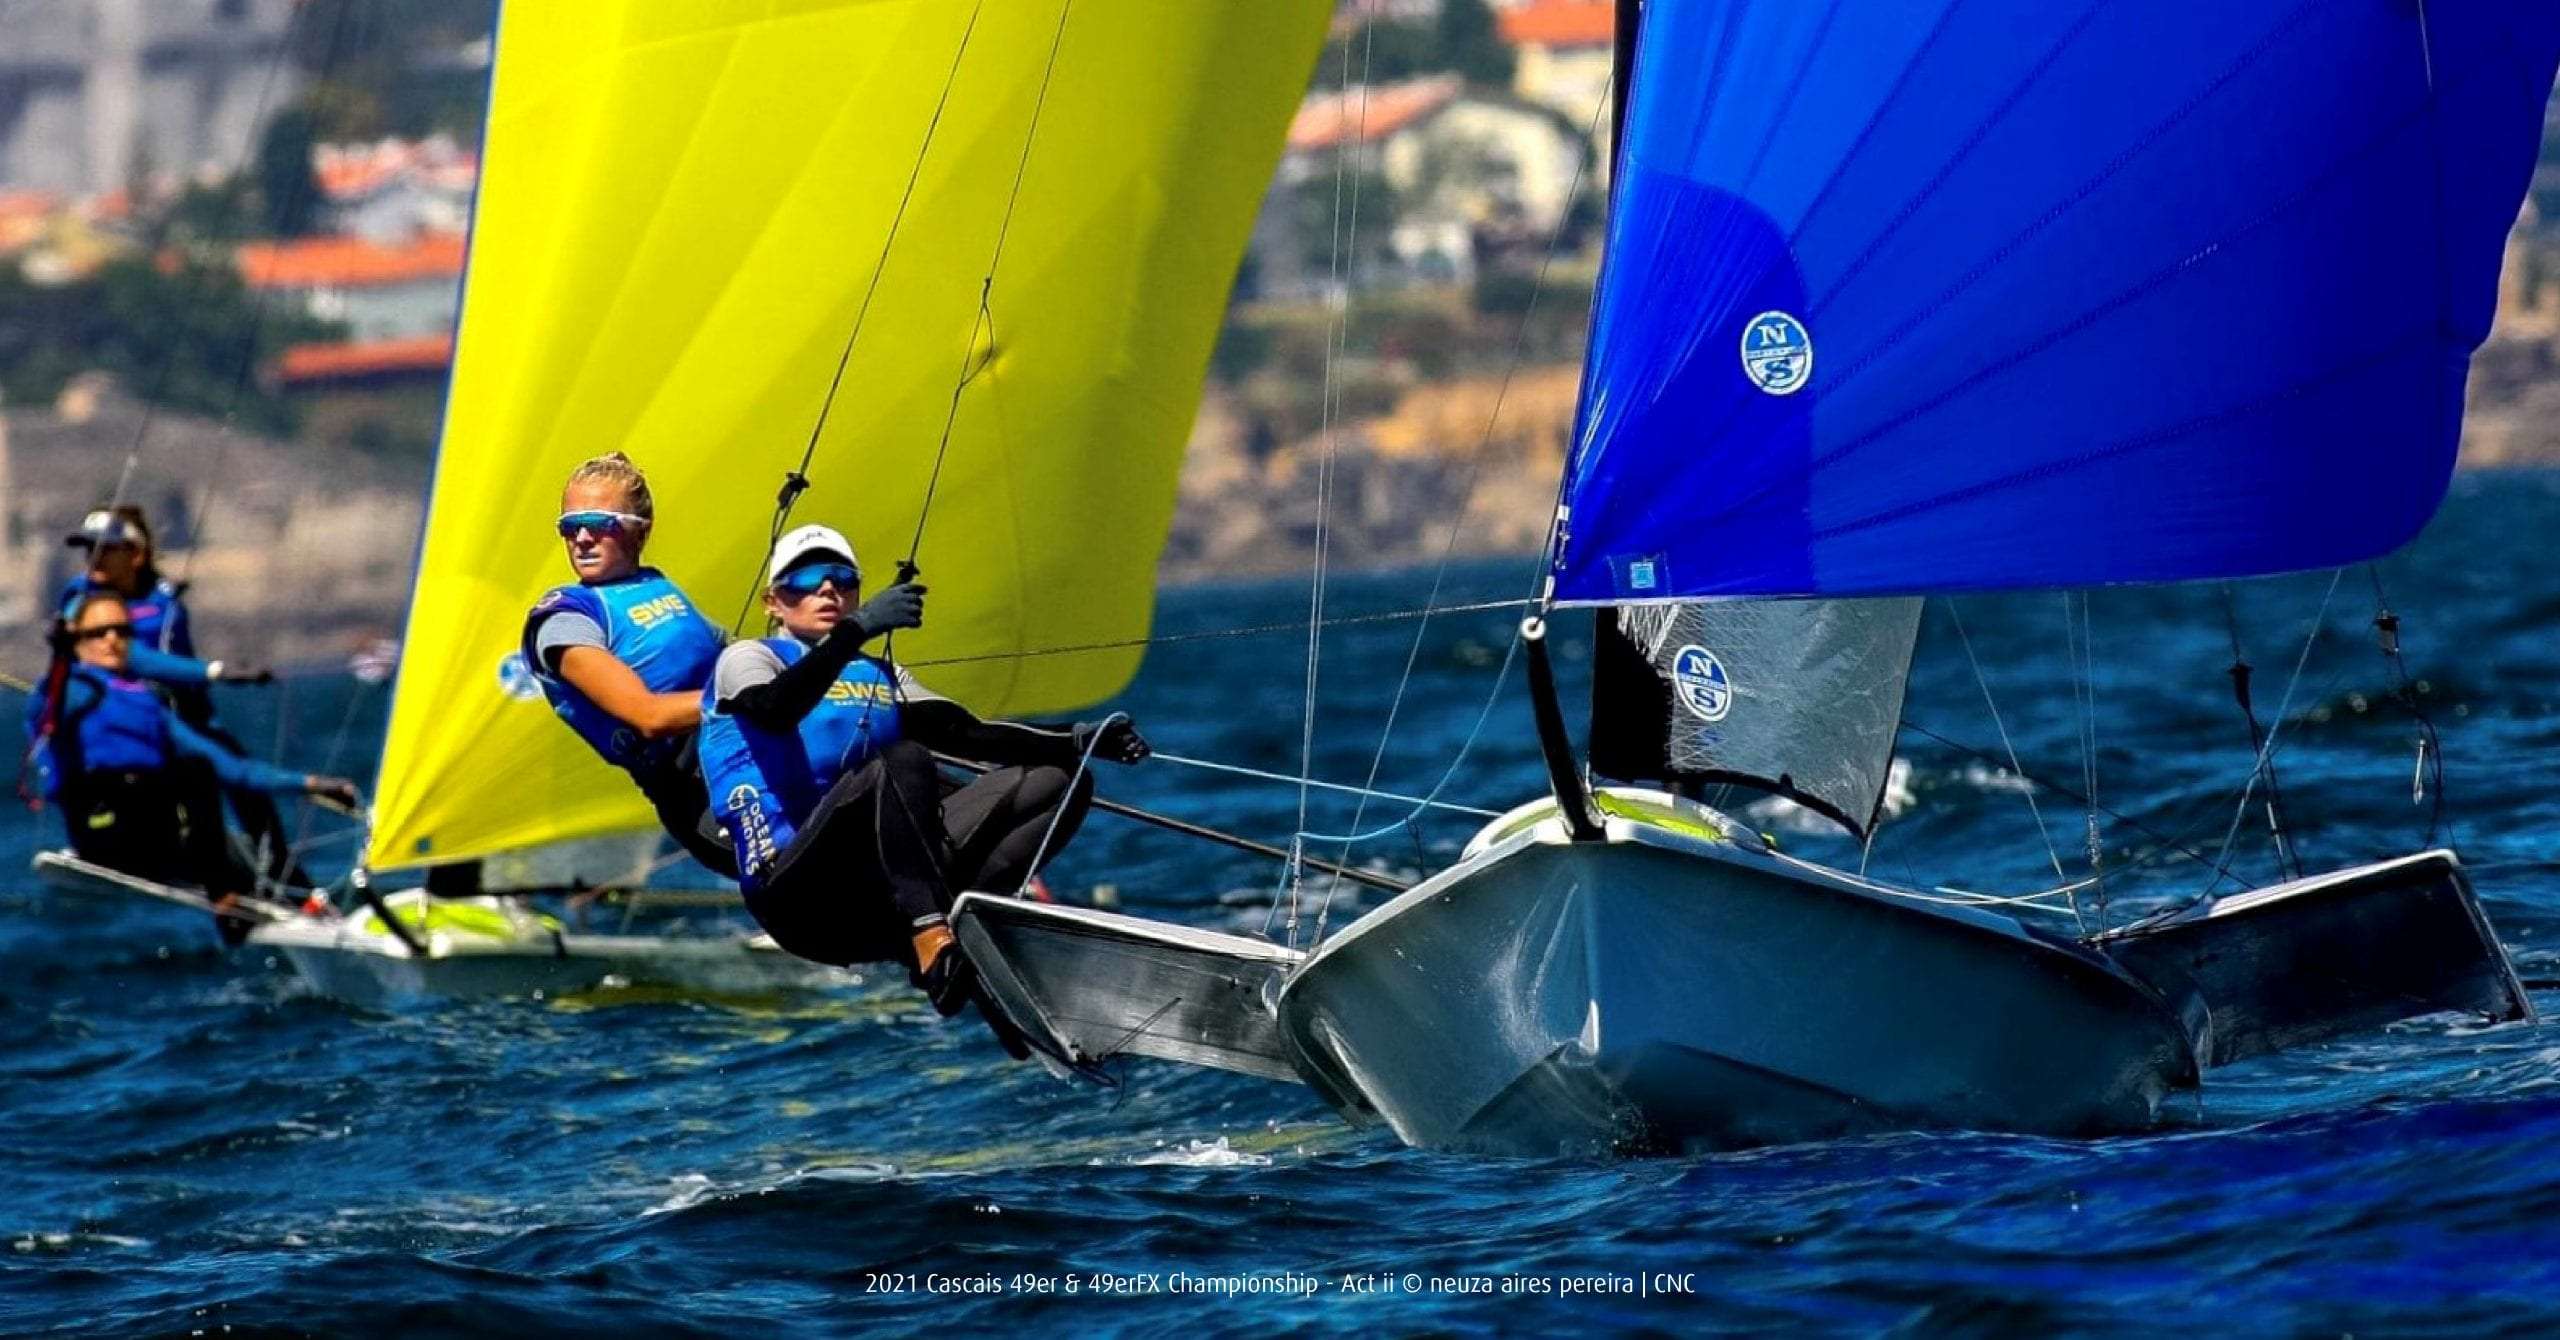 2 Klara Wester and team mate Rebecca Netzler competing in the 49erFX Championships in Cascais earlier this year - copyright neuza aires pereira CNC_Fb